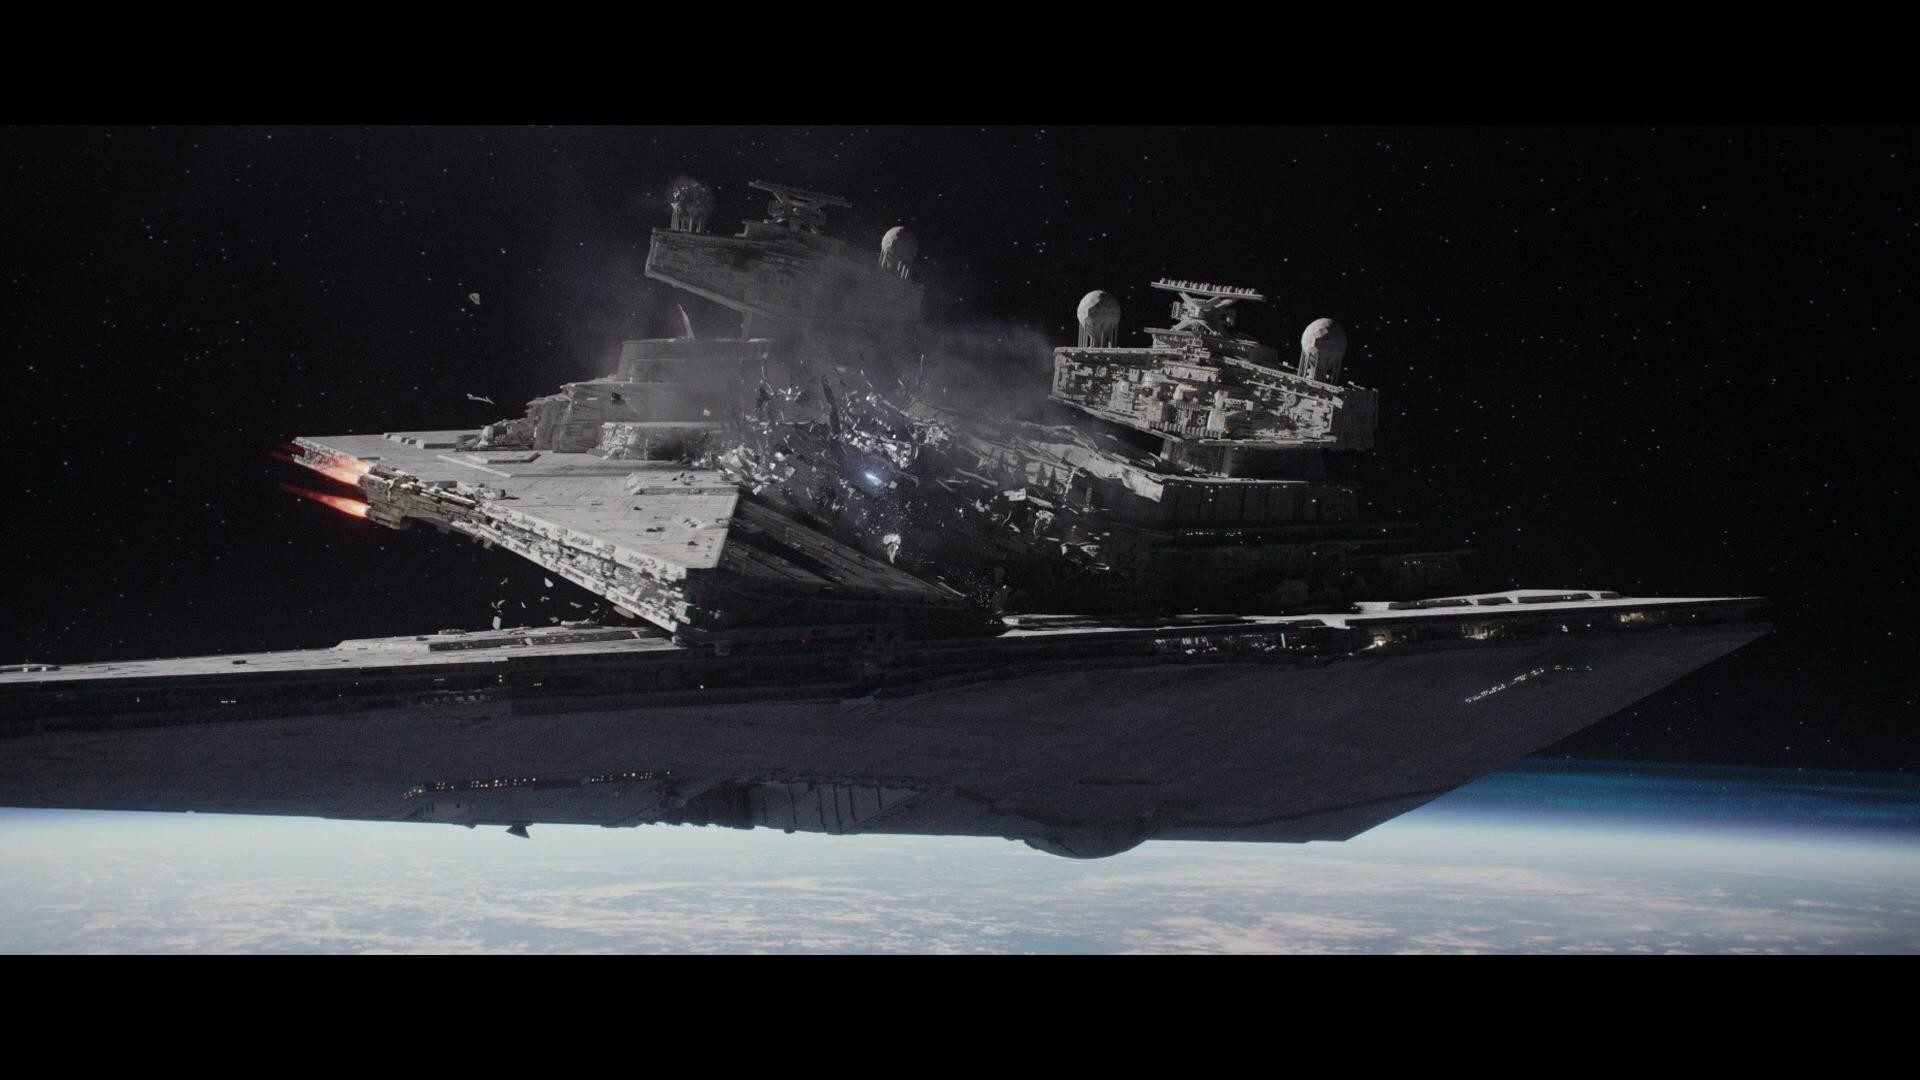 1920x1080 Wallpaper of a Star Destroyer destroying another Star Destroyer (Rogue One)